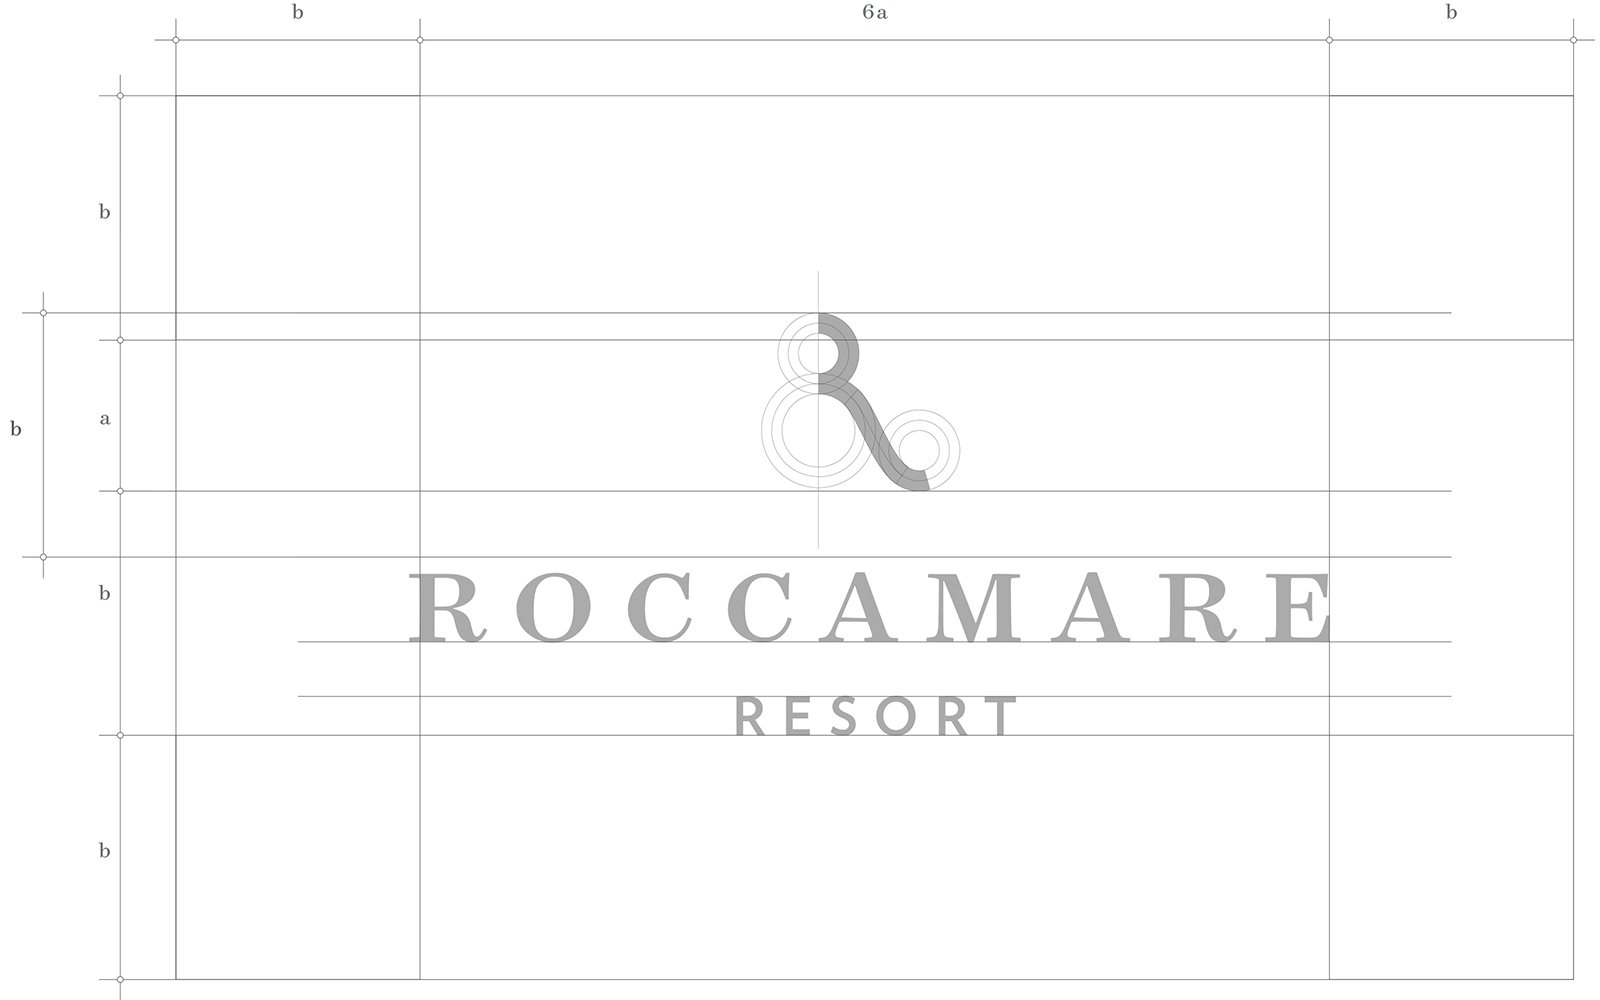 A new look for the Resort Roccamare